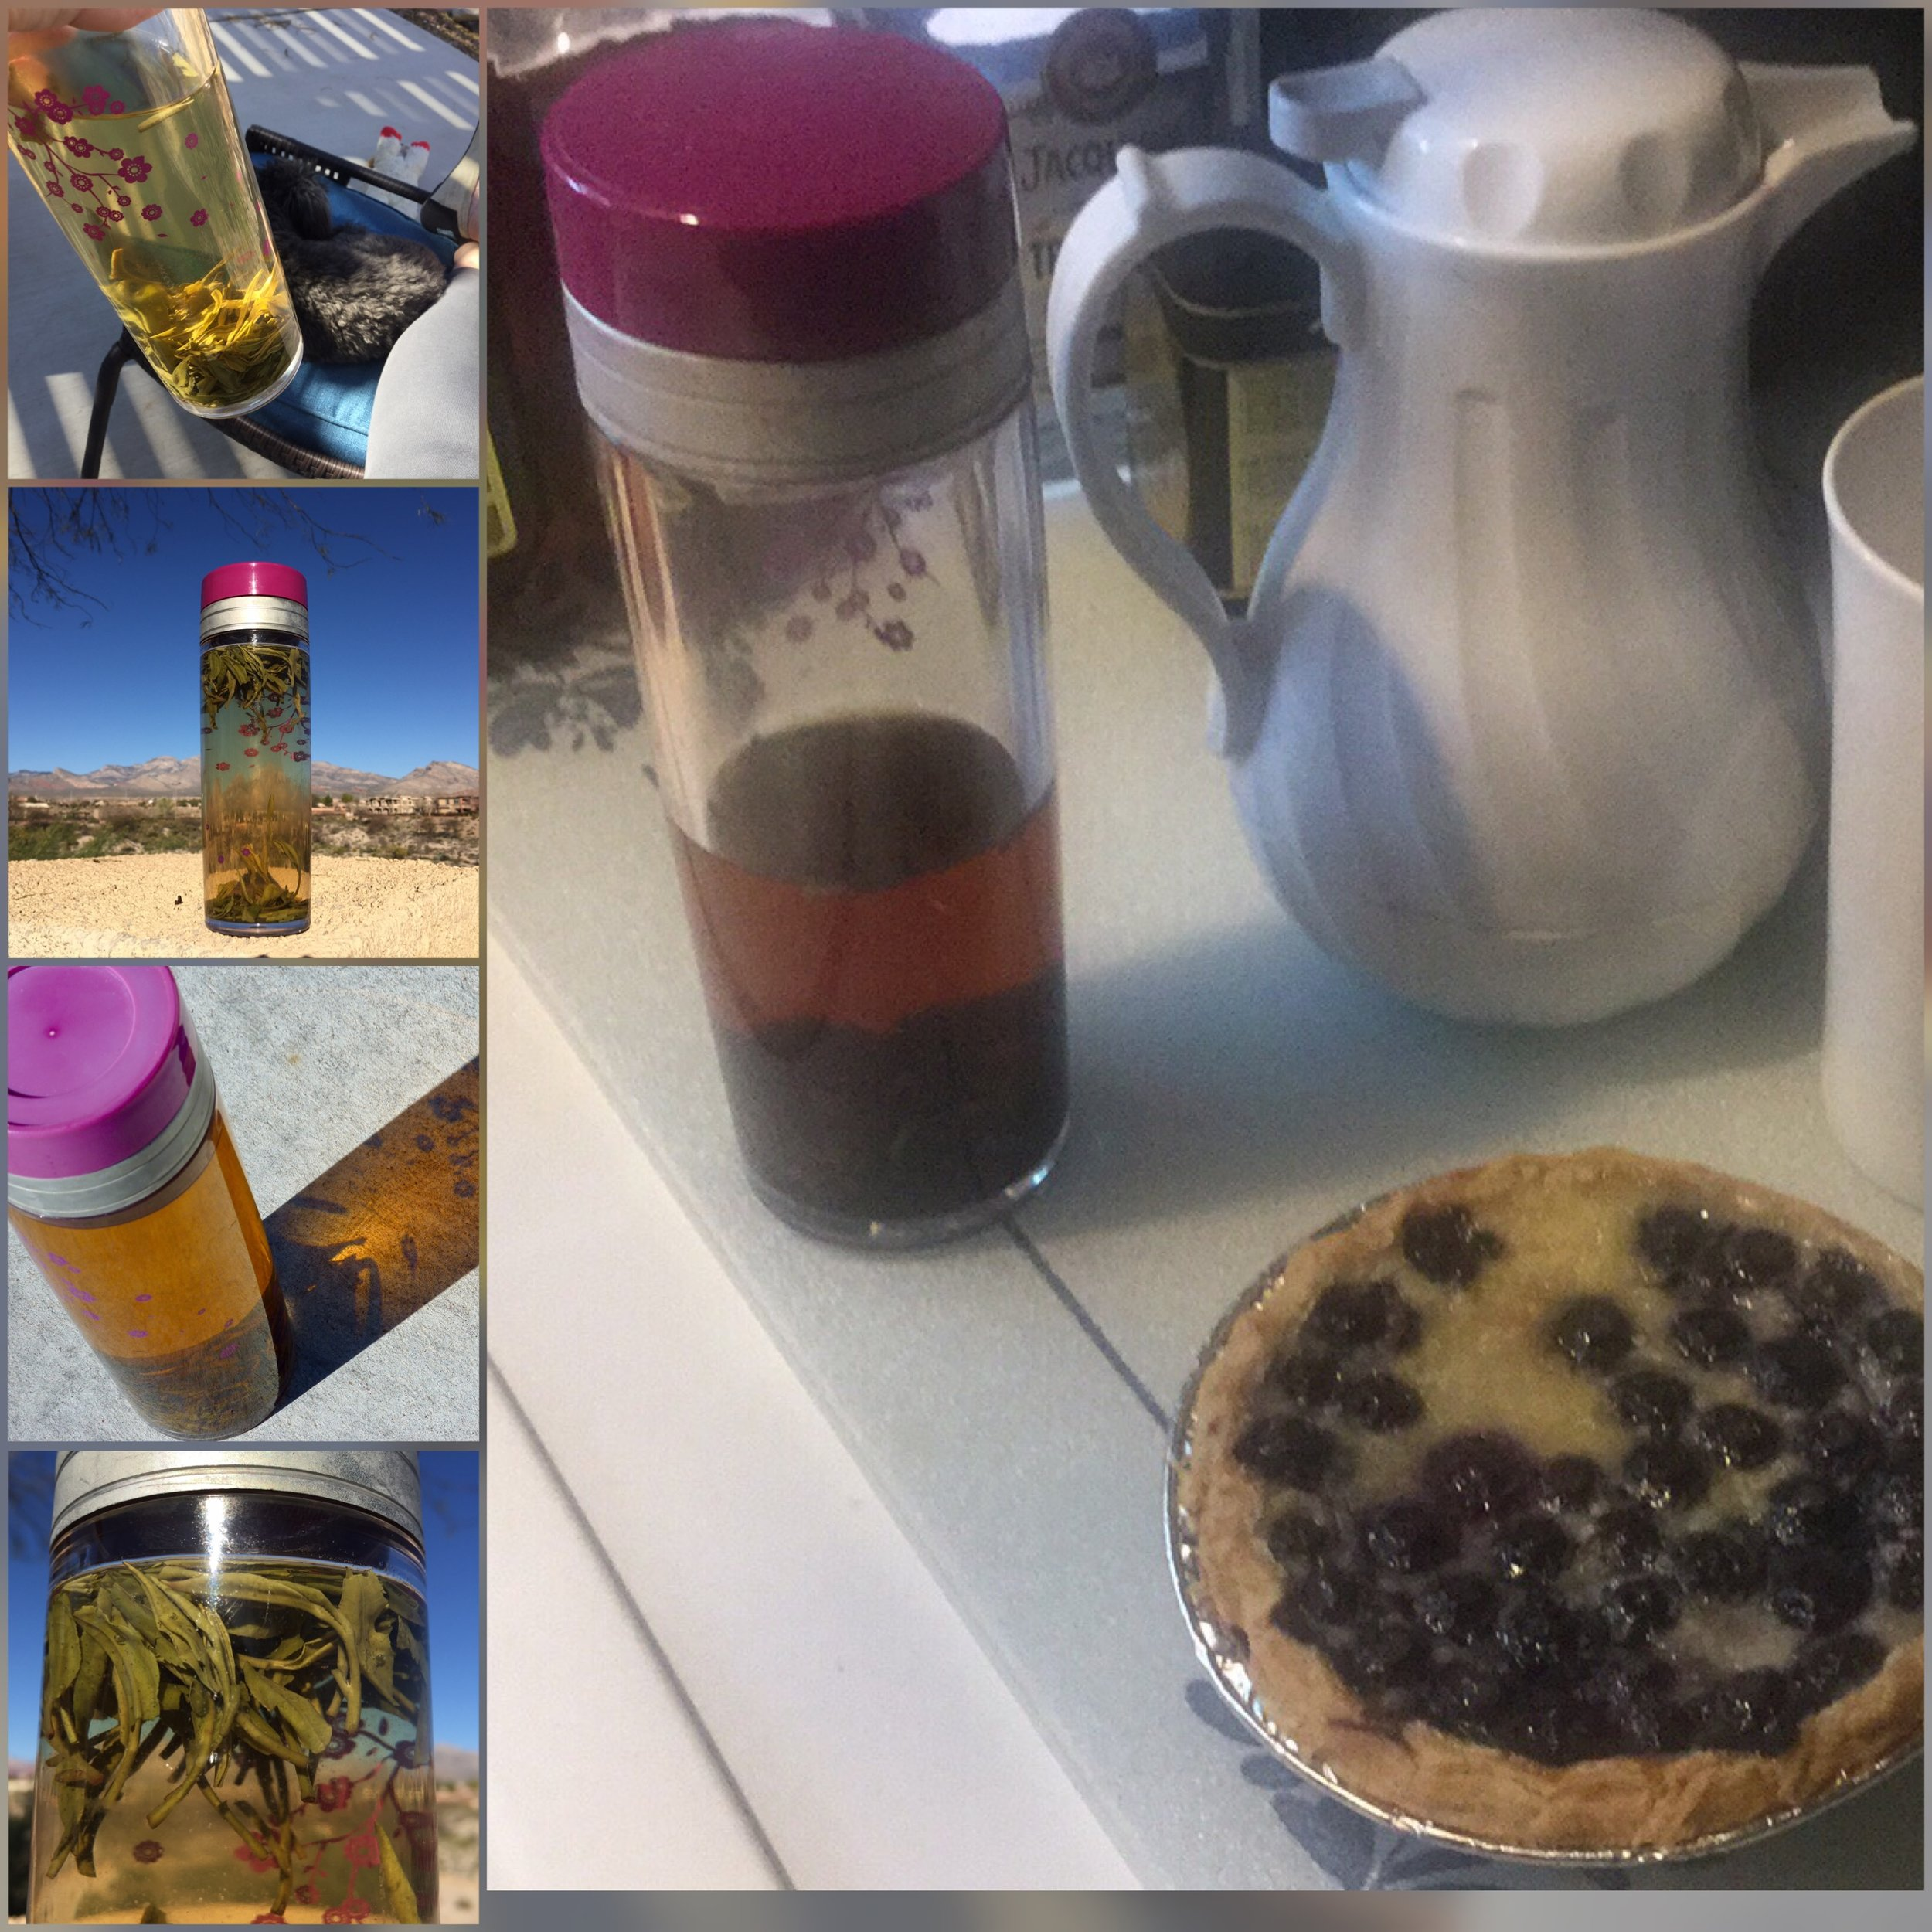 Grandpa Style works well in a Tea Traveler and a great accompaniment to Blueberry pie, the sun, and the desert.  Lifting my cup to your tea and your style,   The Tea And Hat Lady